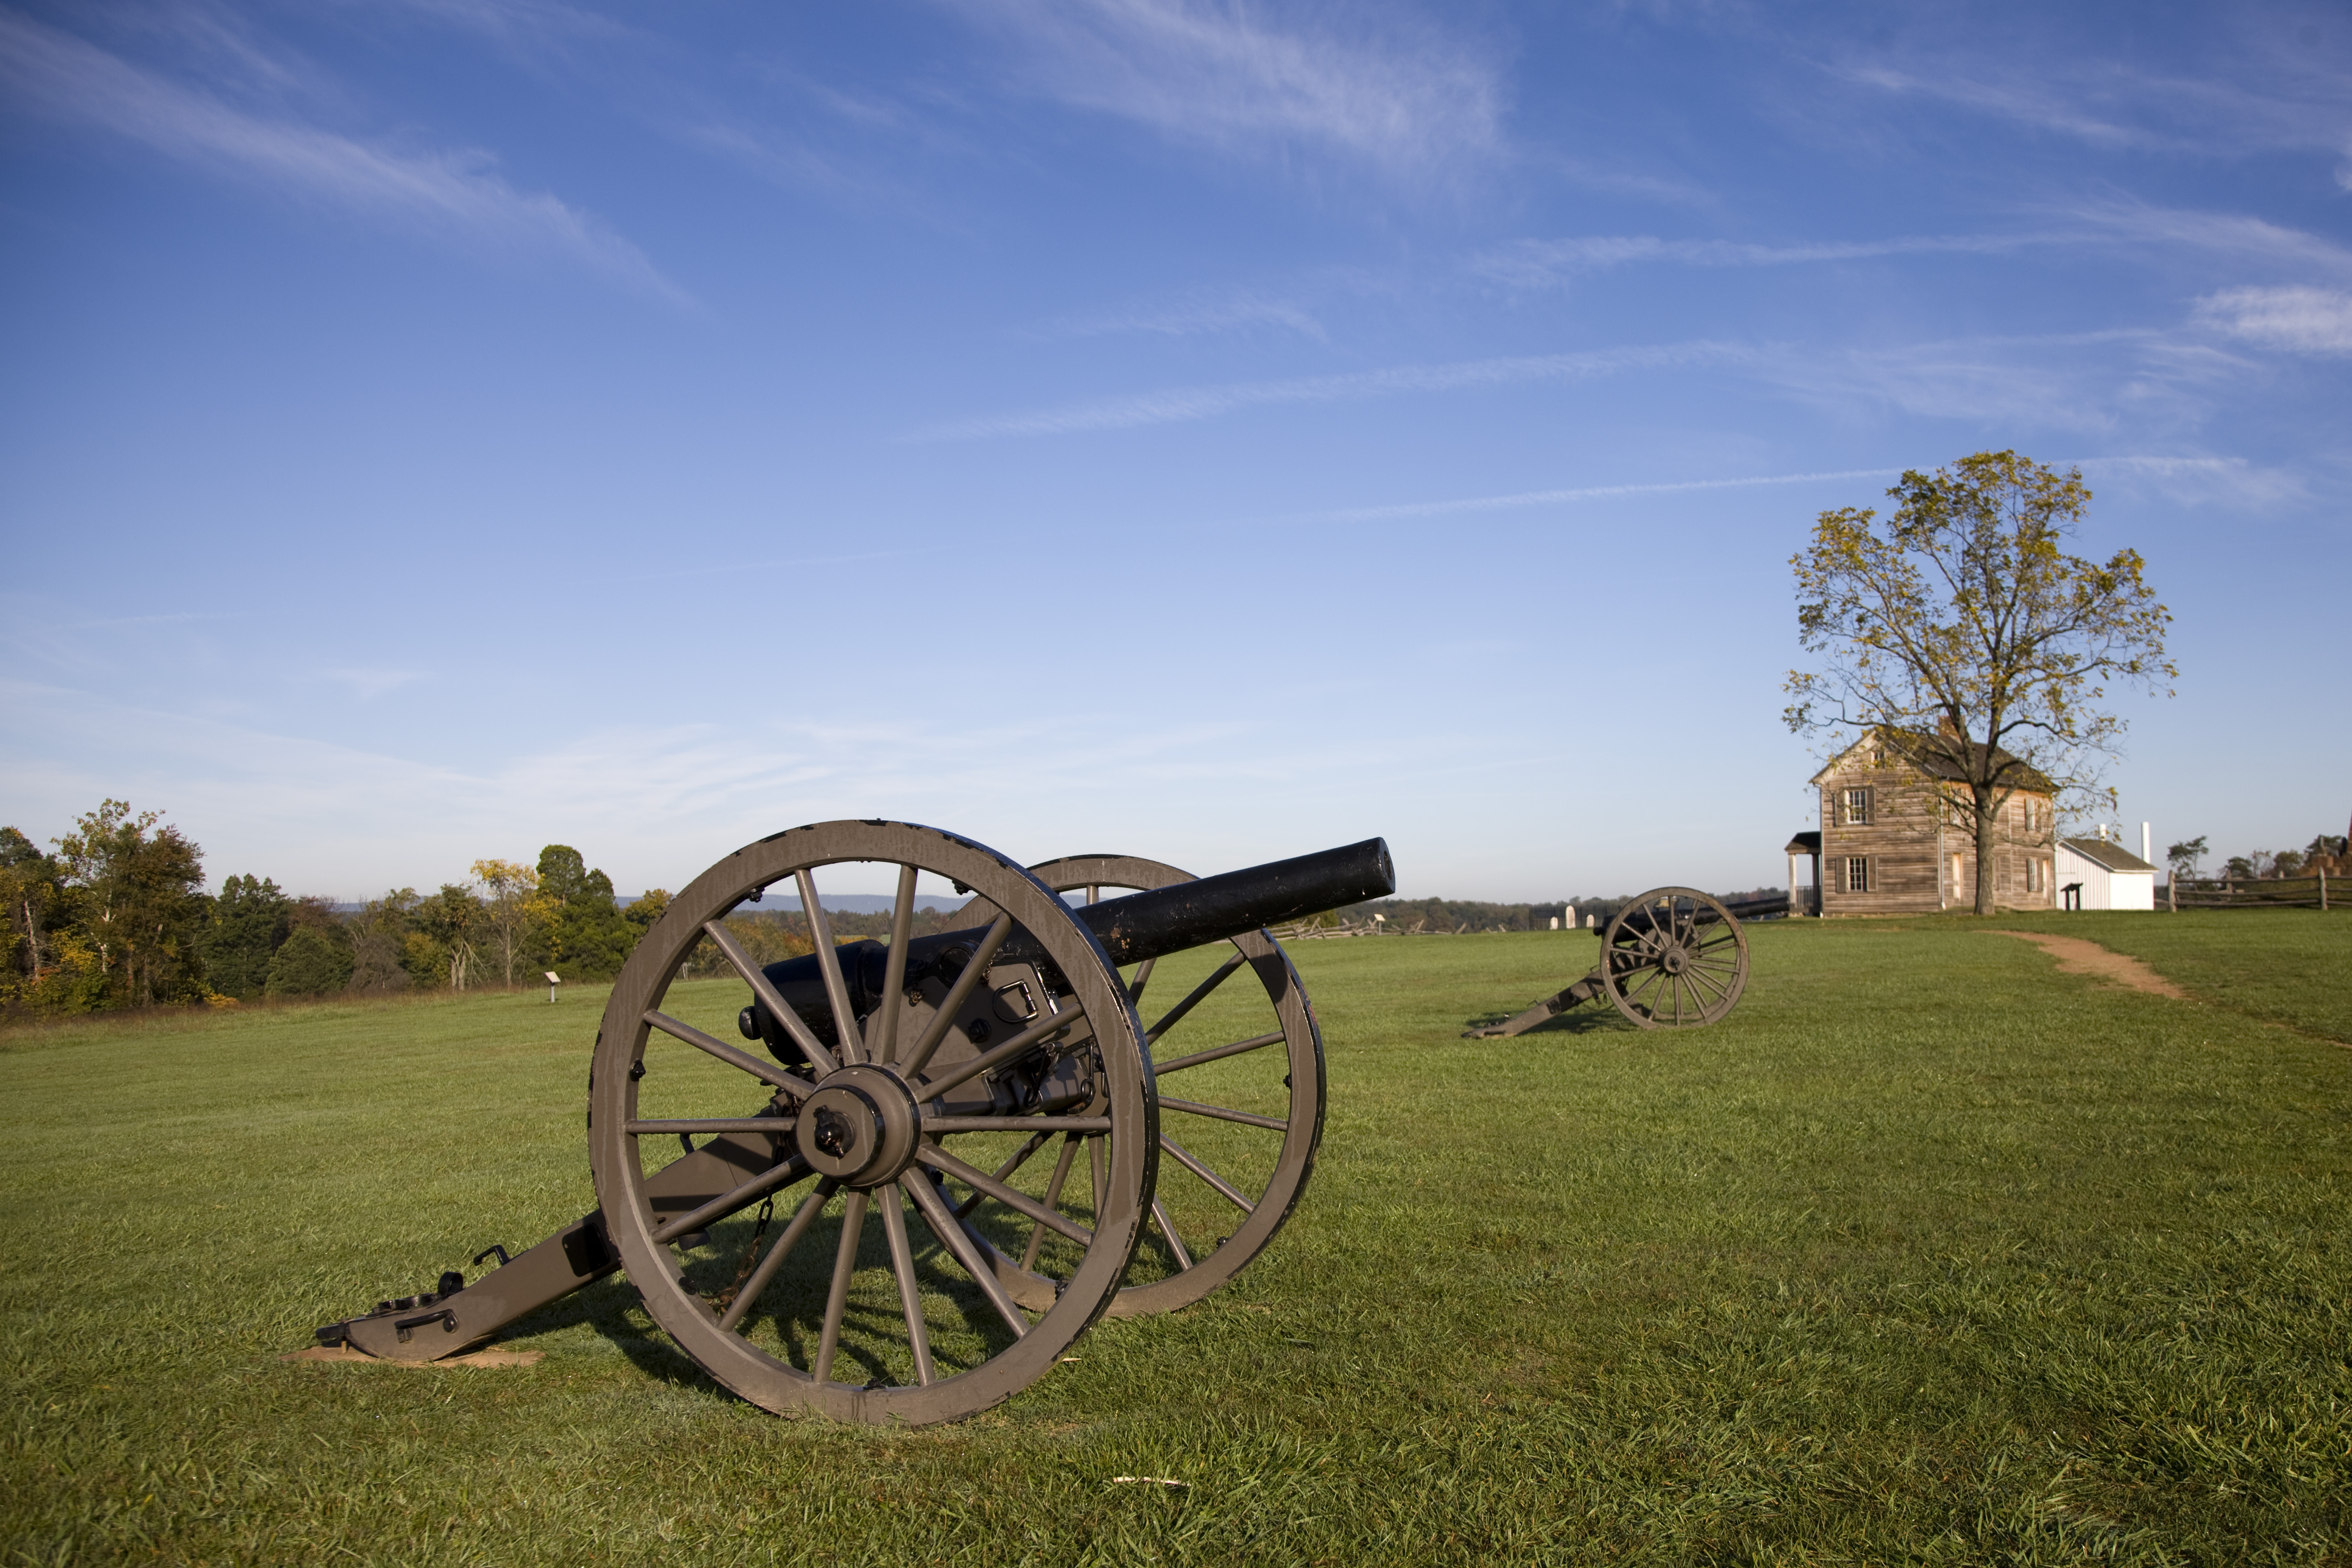 a history of the battle of bullrun manassas in the civil war of america Second battle of bull run, also called battle of second manassas, (28–30 august 1862), second battle of the american civil war (1861–65) fought at a small meandering stream and tributary of.